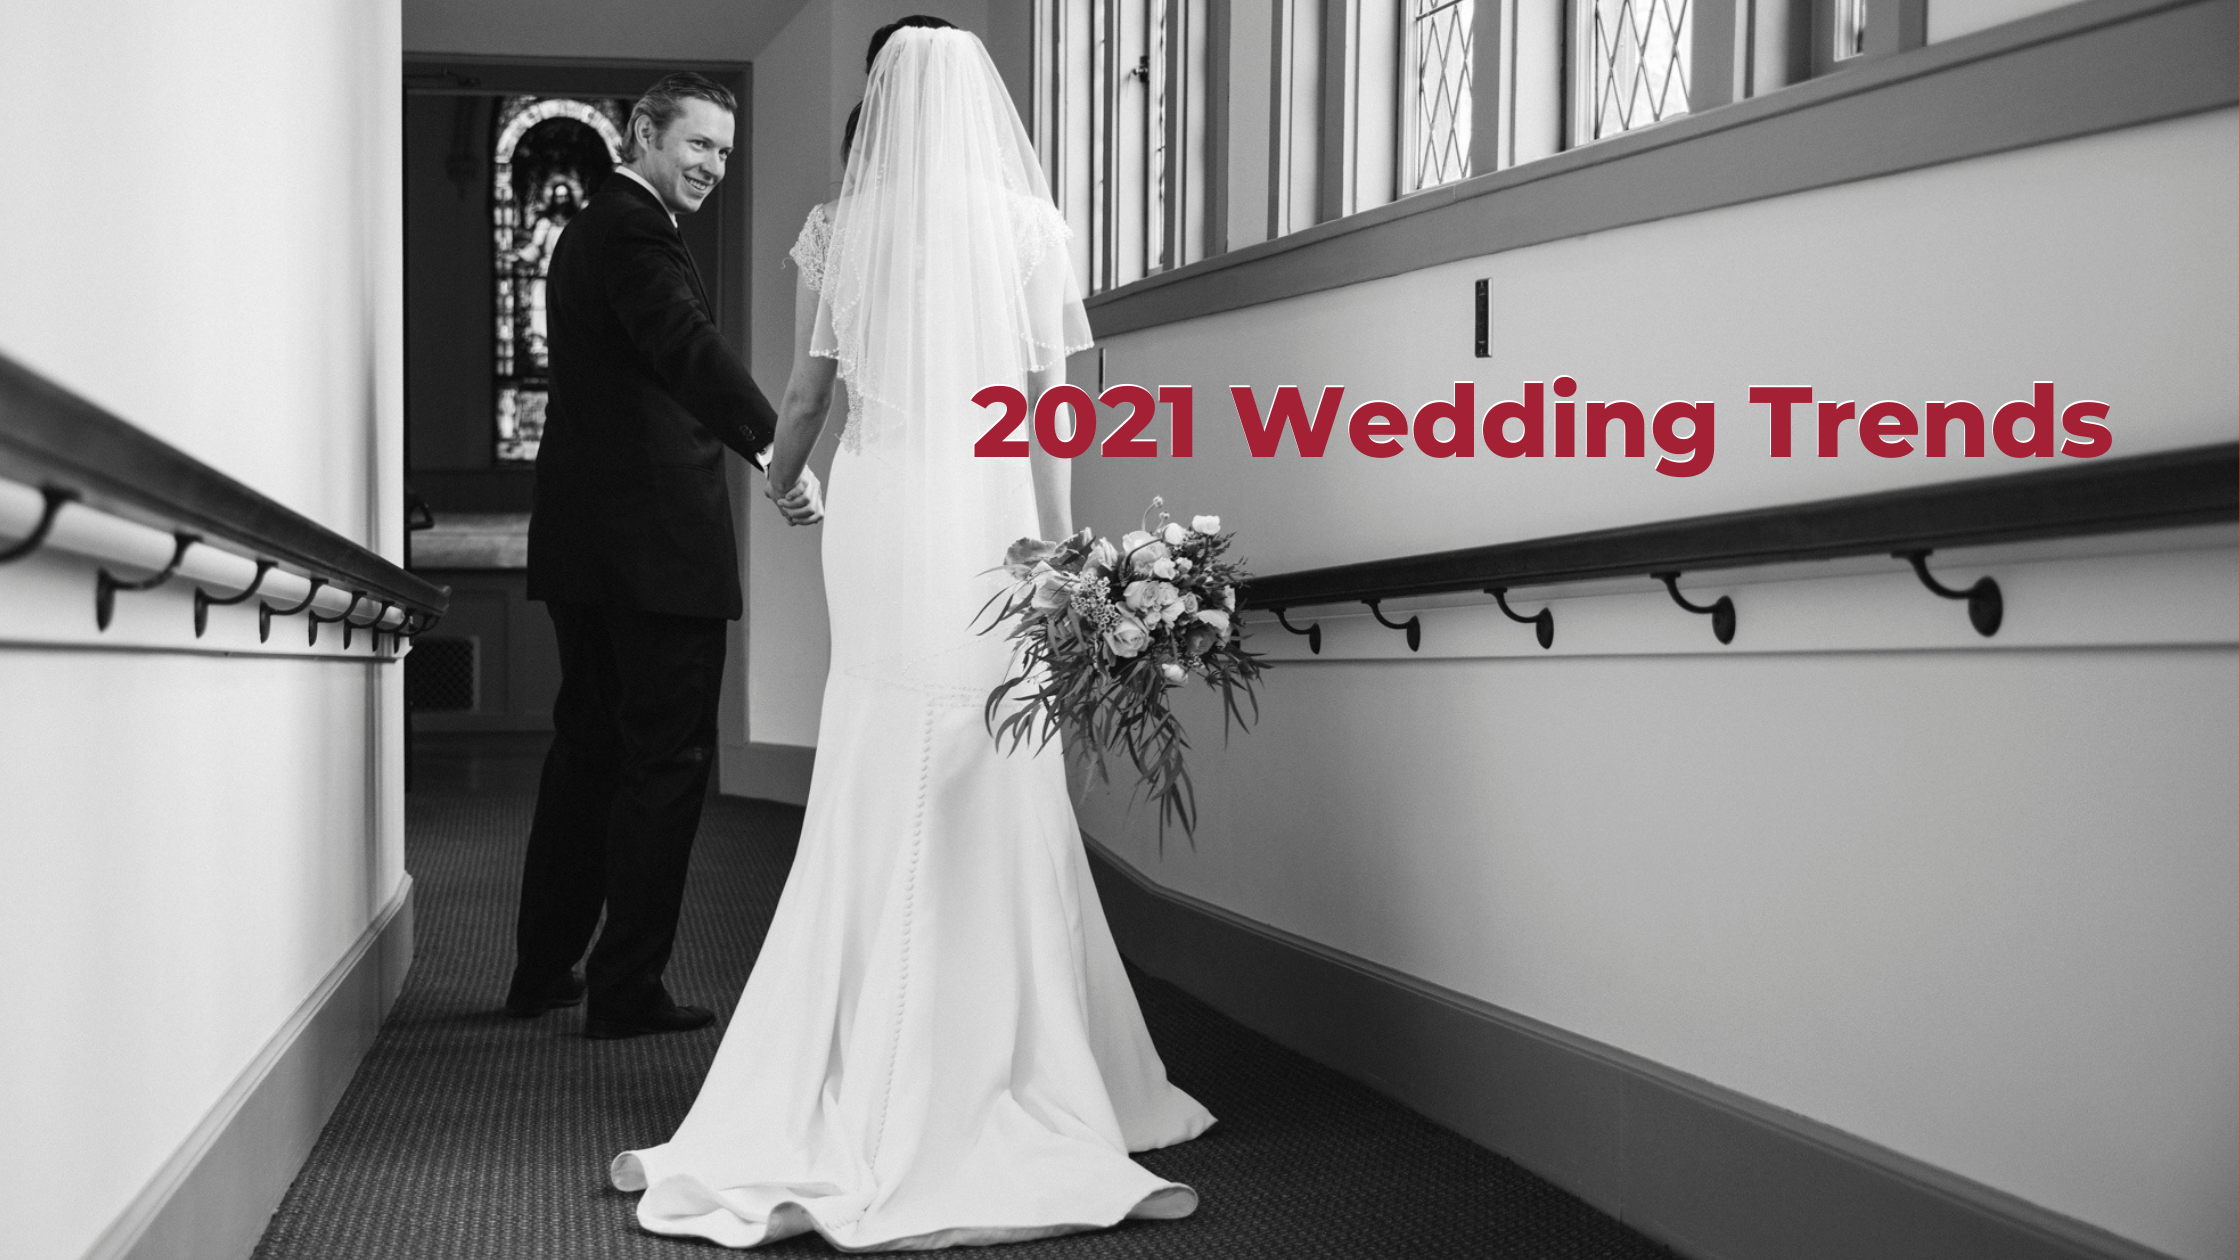 2021 Wedding Trends in the Berkshires and Beyond